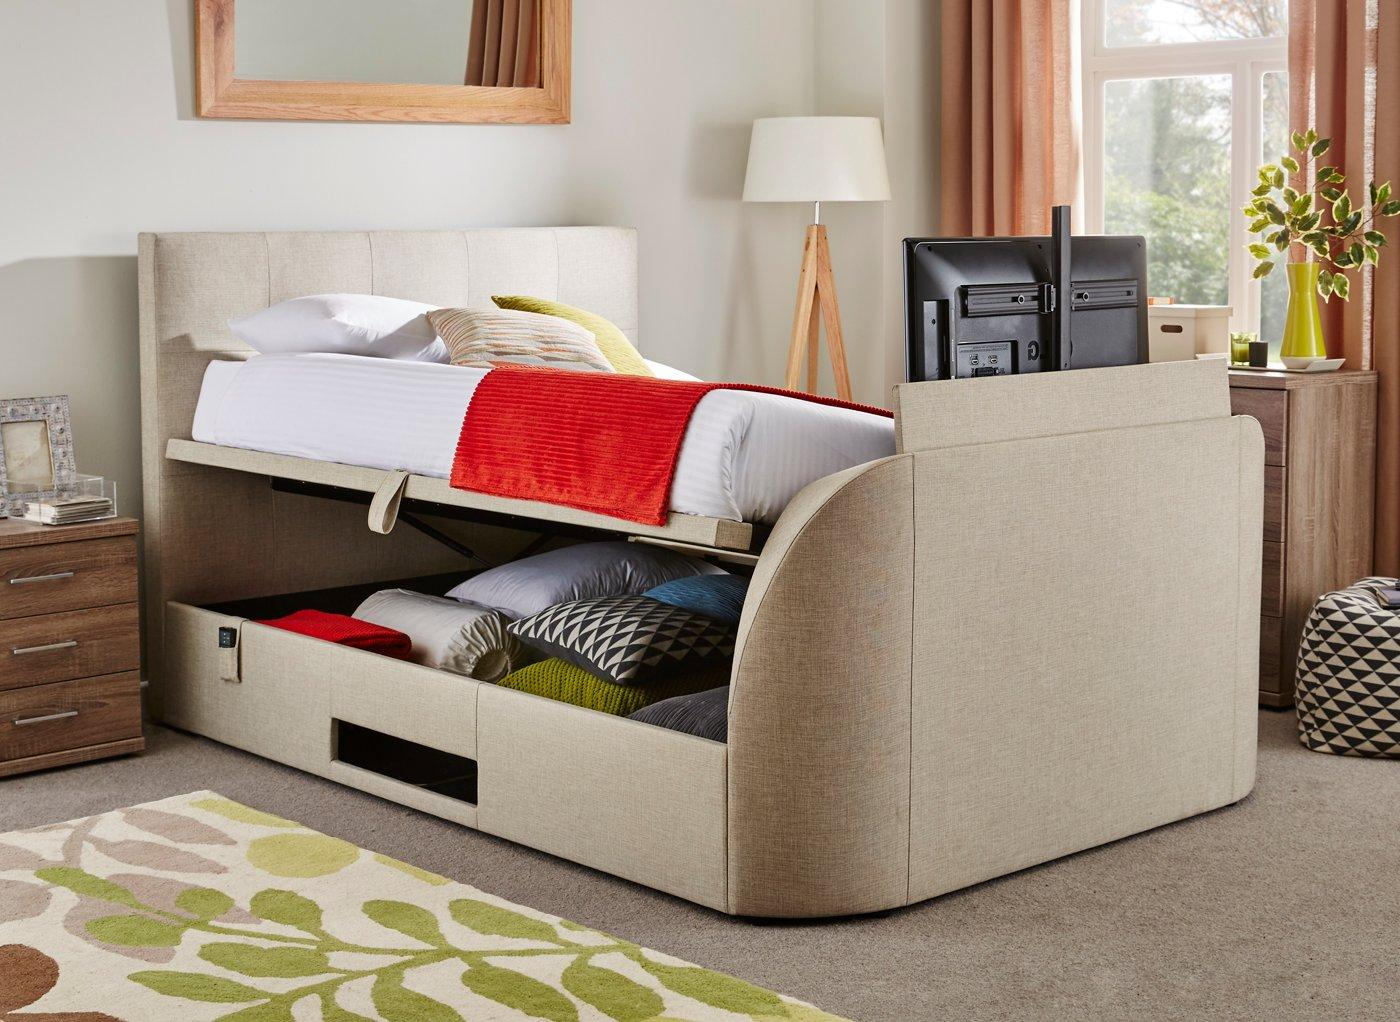 Tv In Bed : Newark ft double faux leather electric tv bed white amazon